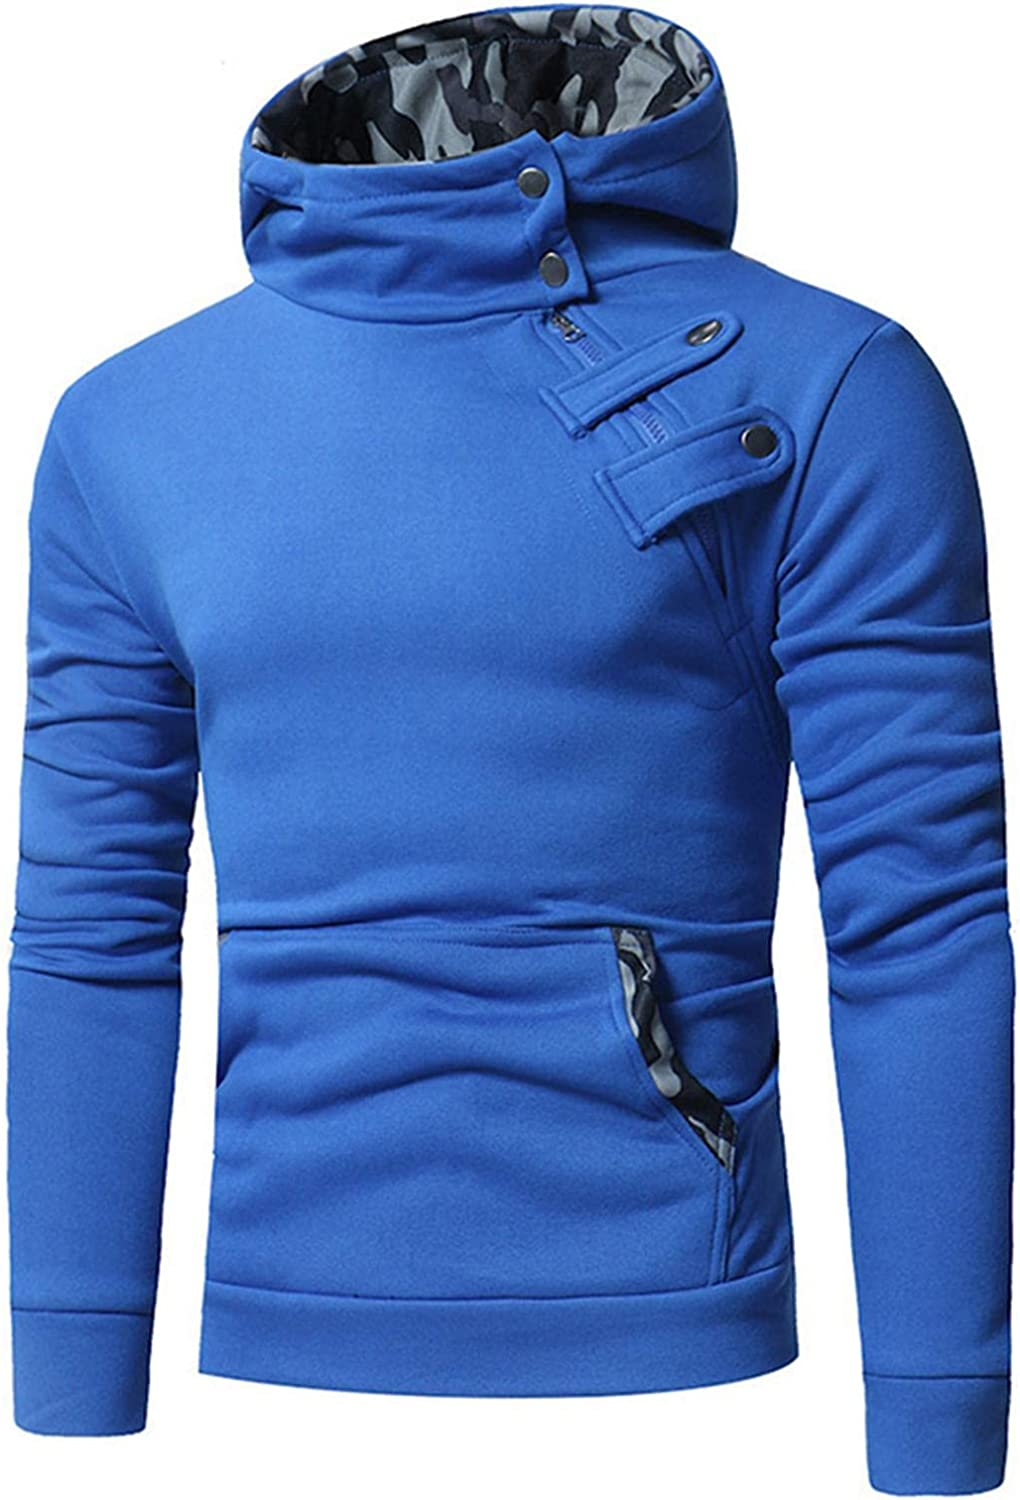 Qsctys Mens Sweatshirts - Slim Fit Crewneck Long Sleeve Men'sFashion Hoodies Solid Color Casual Pullover Hooded with Pocket